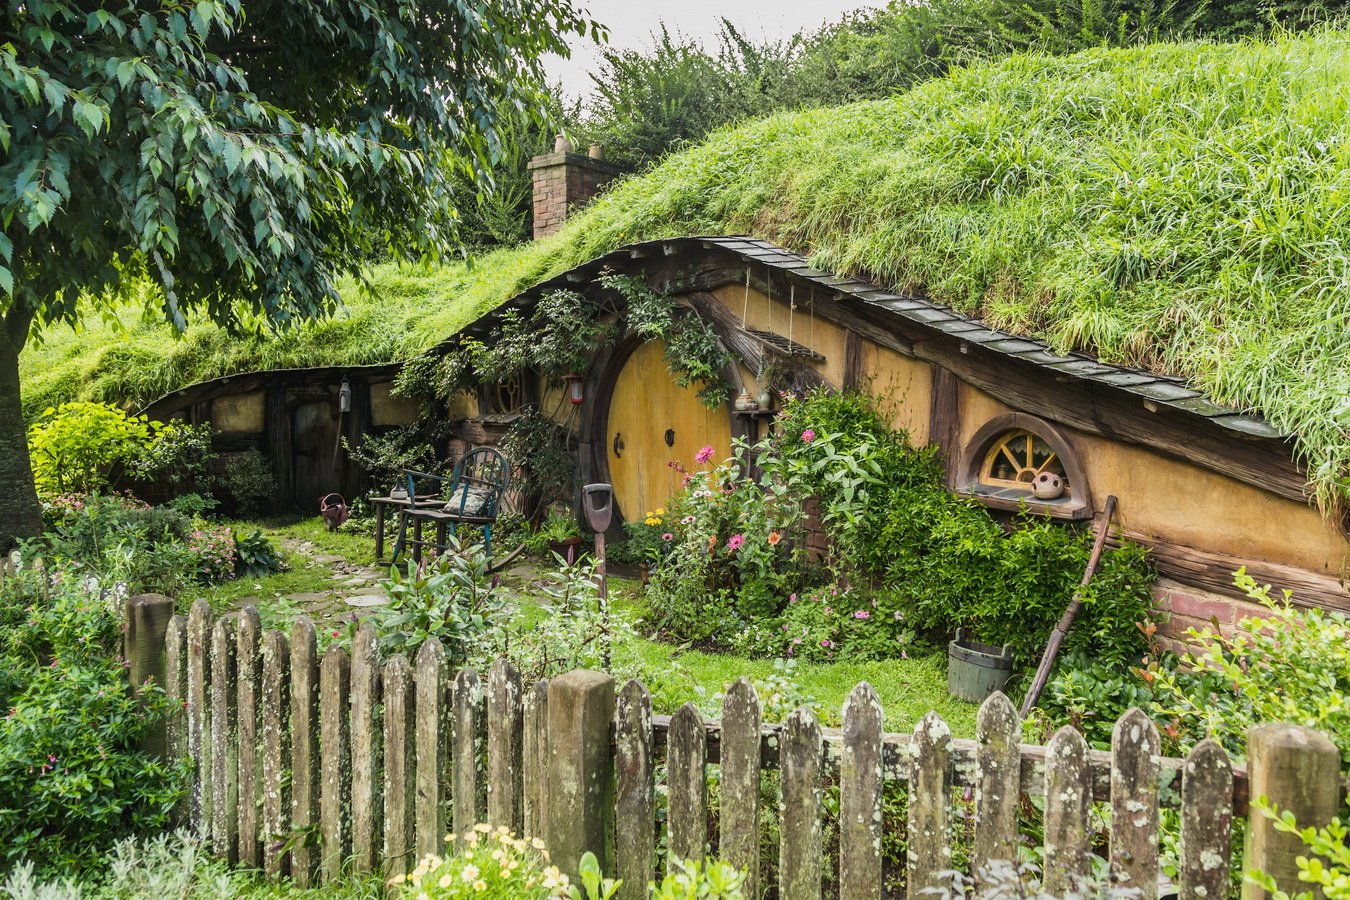 hobbit hause,The Hobbiton, The Shire,Хоббитшир, Удел, Хоббитания, Заселье, Край,Matamata, North Island ,New Zealand